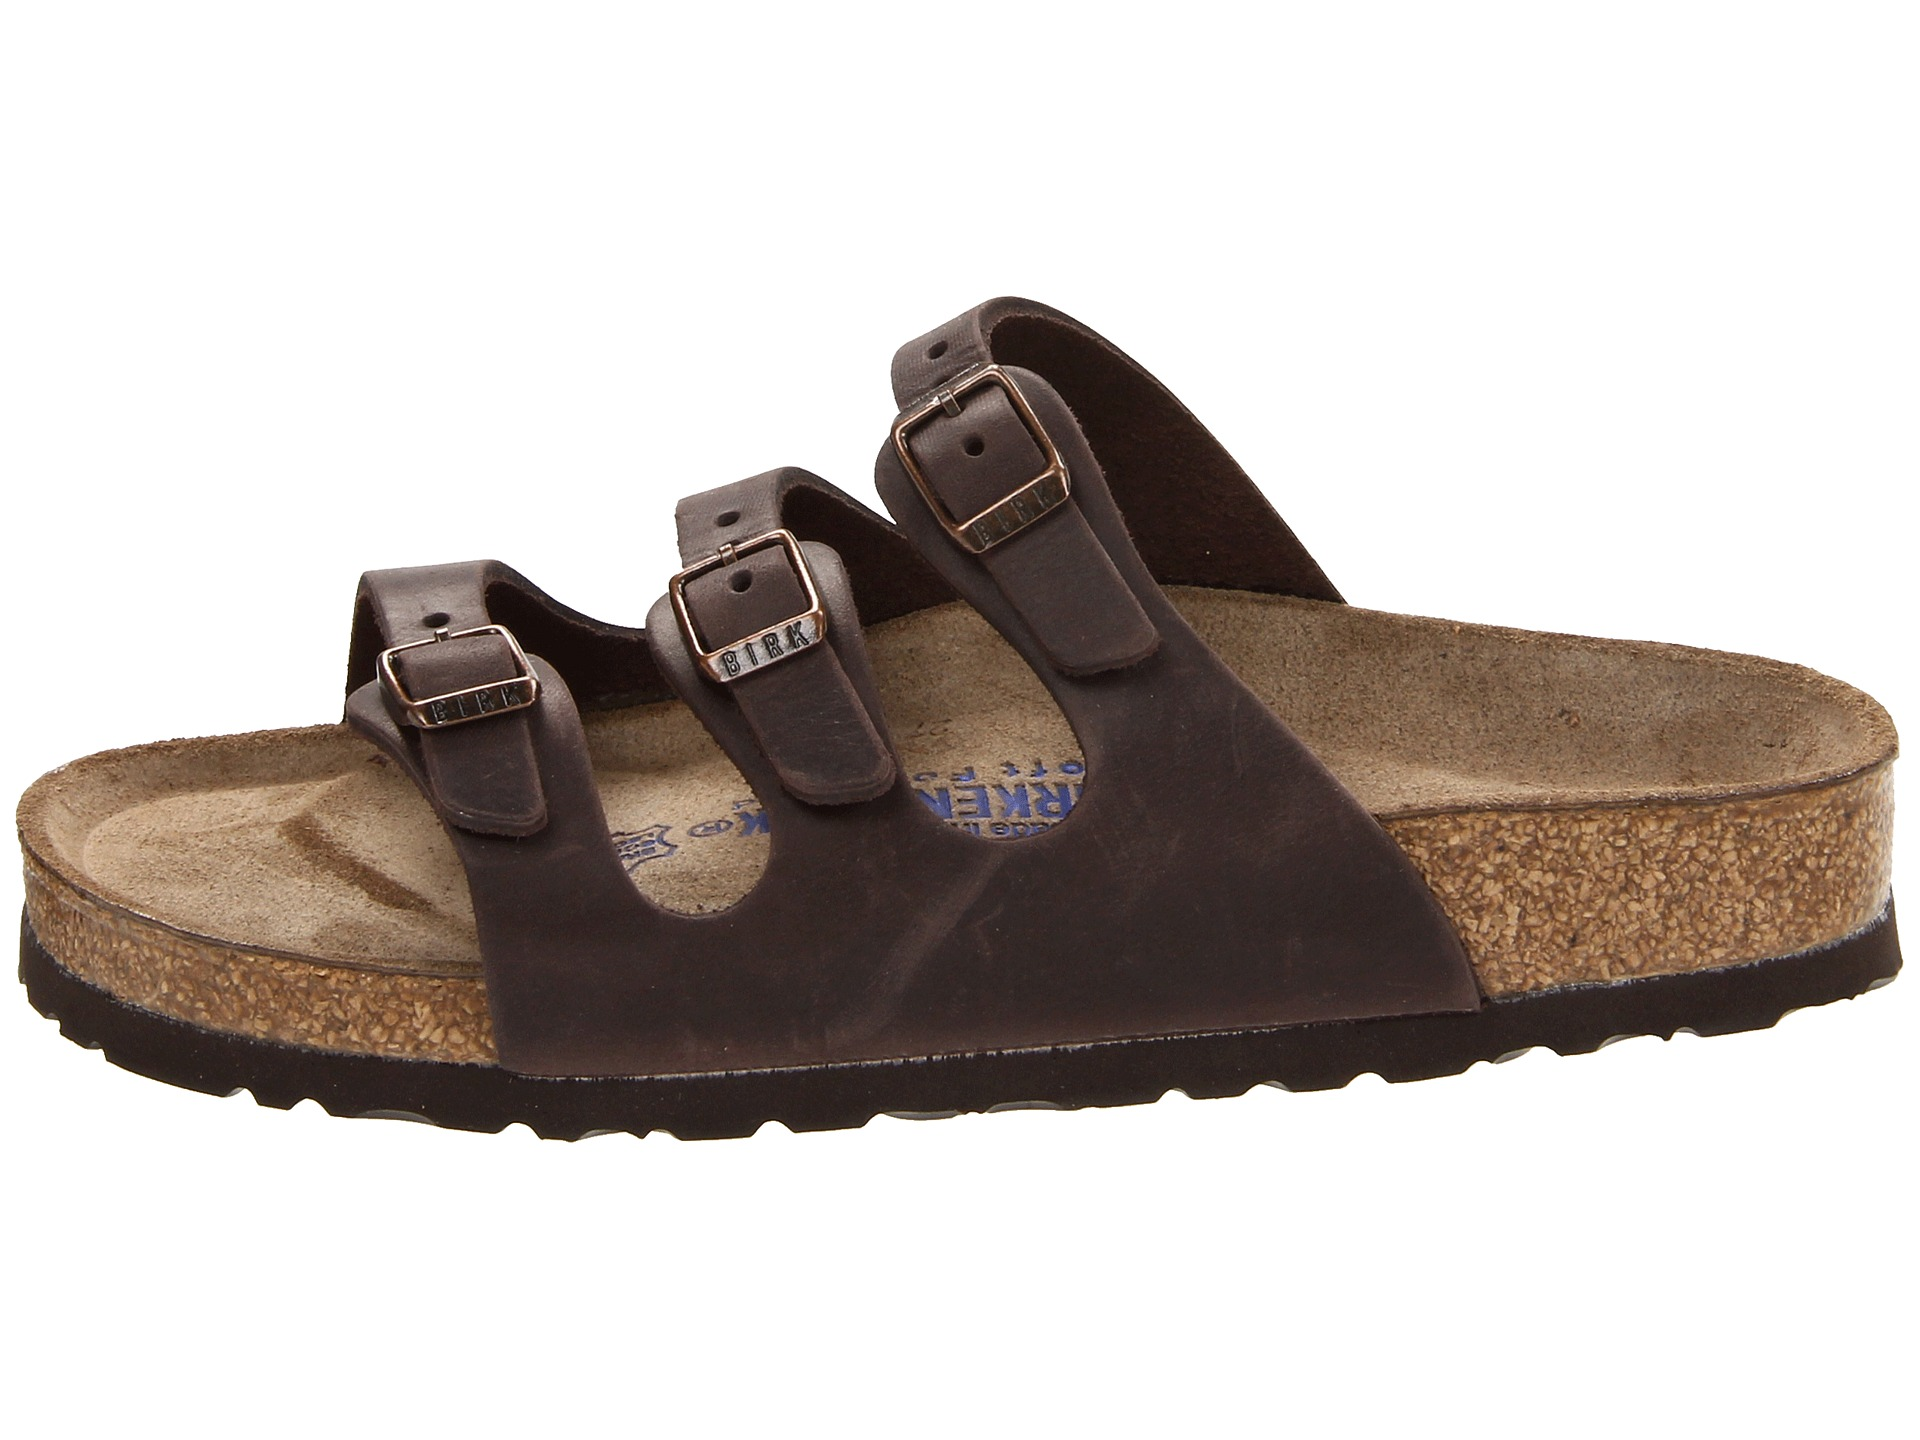 a475f70237d9 Birkenstock Florida Soft Footbed Leather Habana Oiled Leather on ...